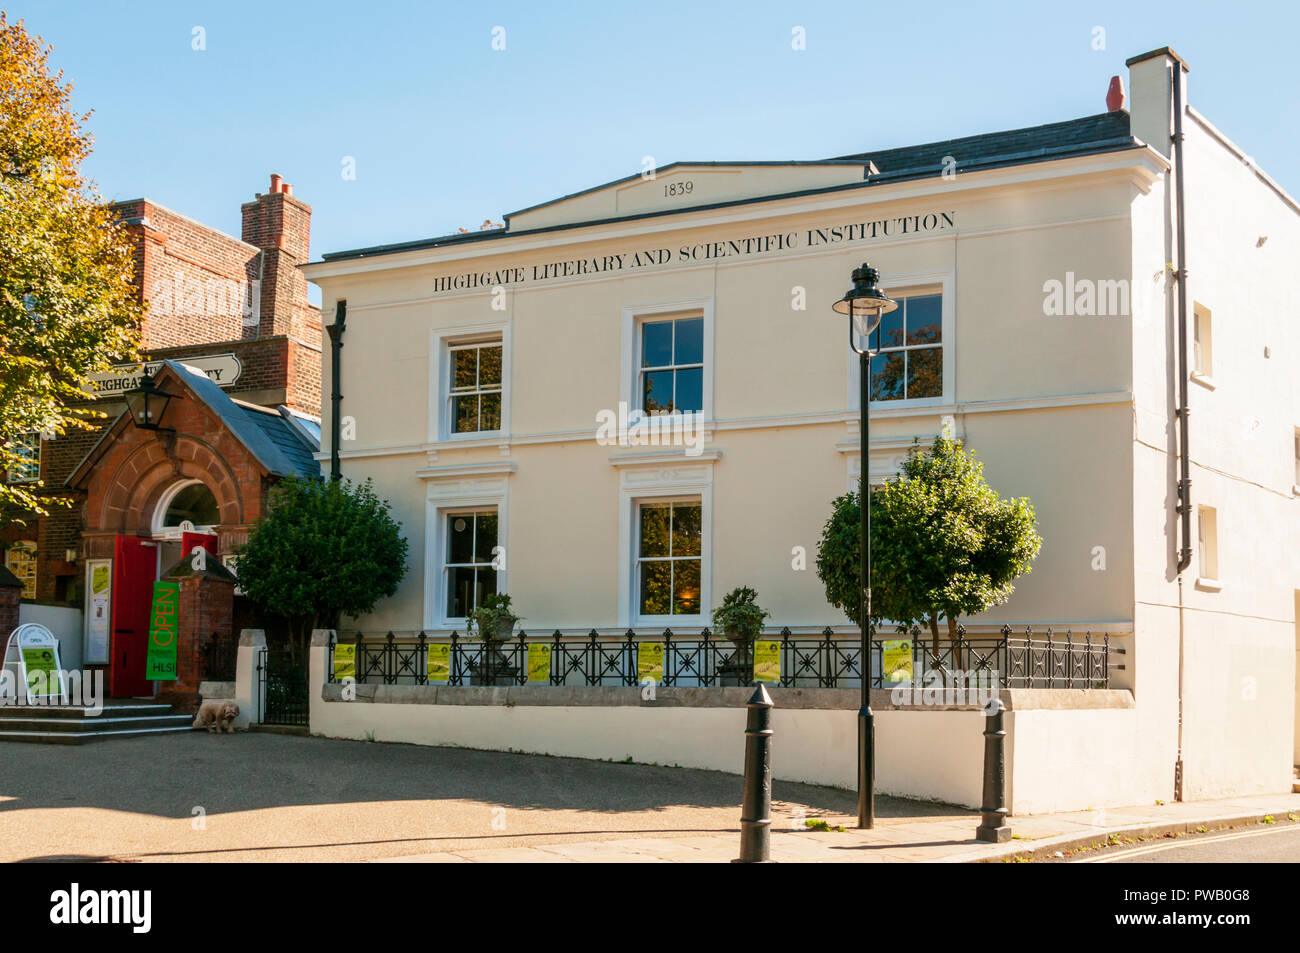 Highgate Literary and Scientific Institution. - Stock Image